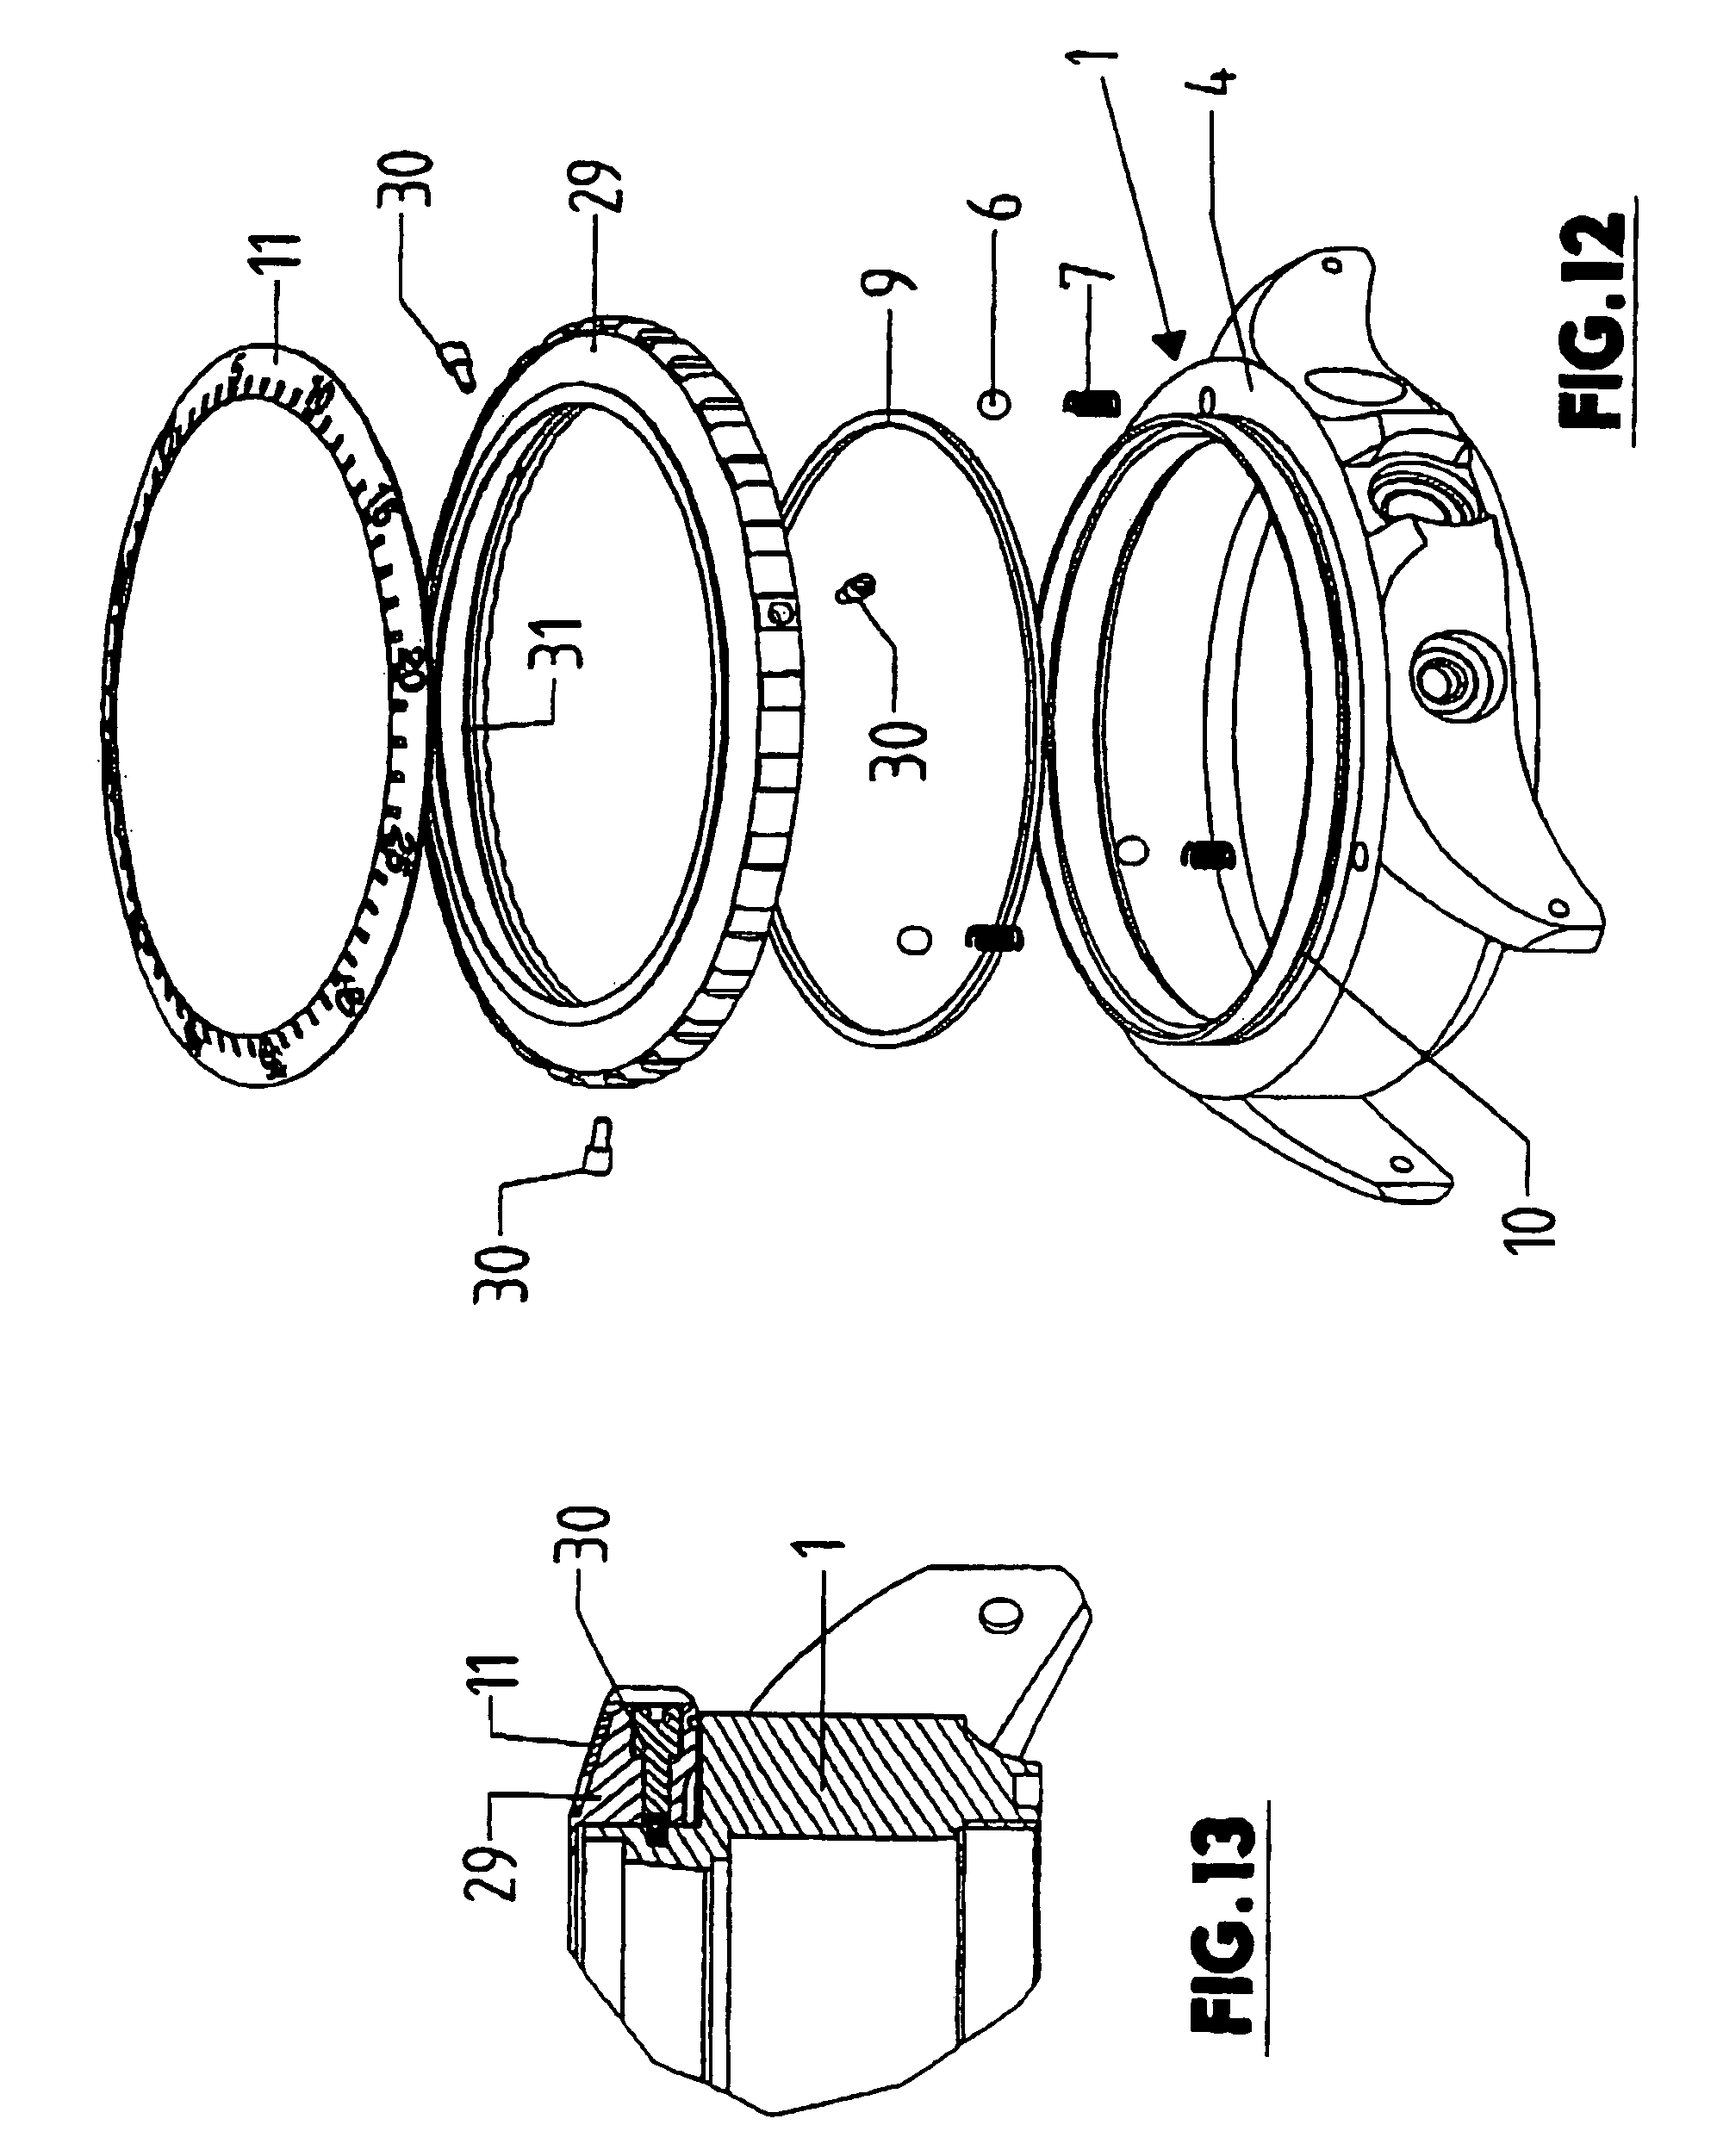 Rolex Watch Drawings Google Search Watch Drawing Watch Sketch Rolex Watches